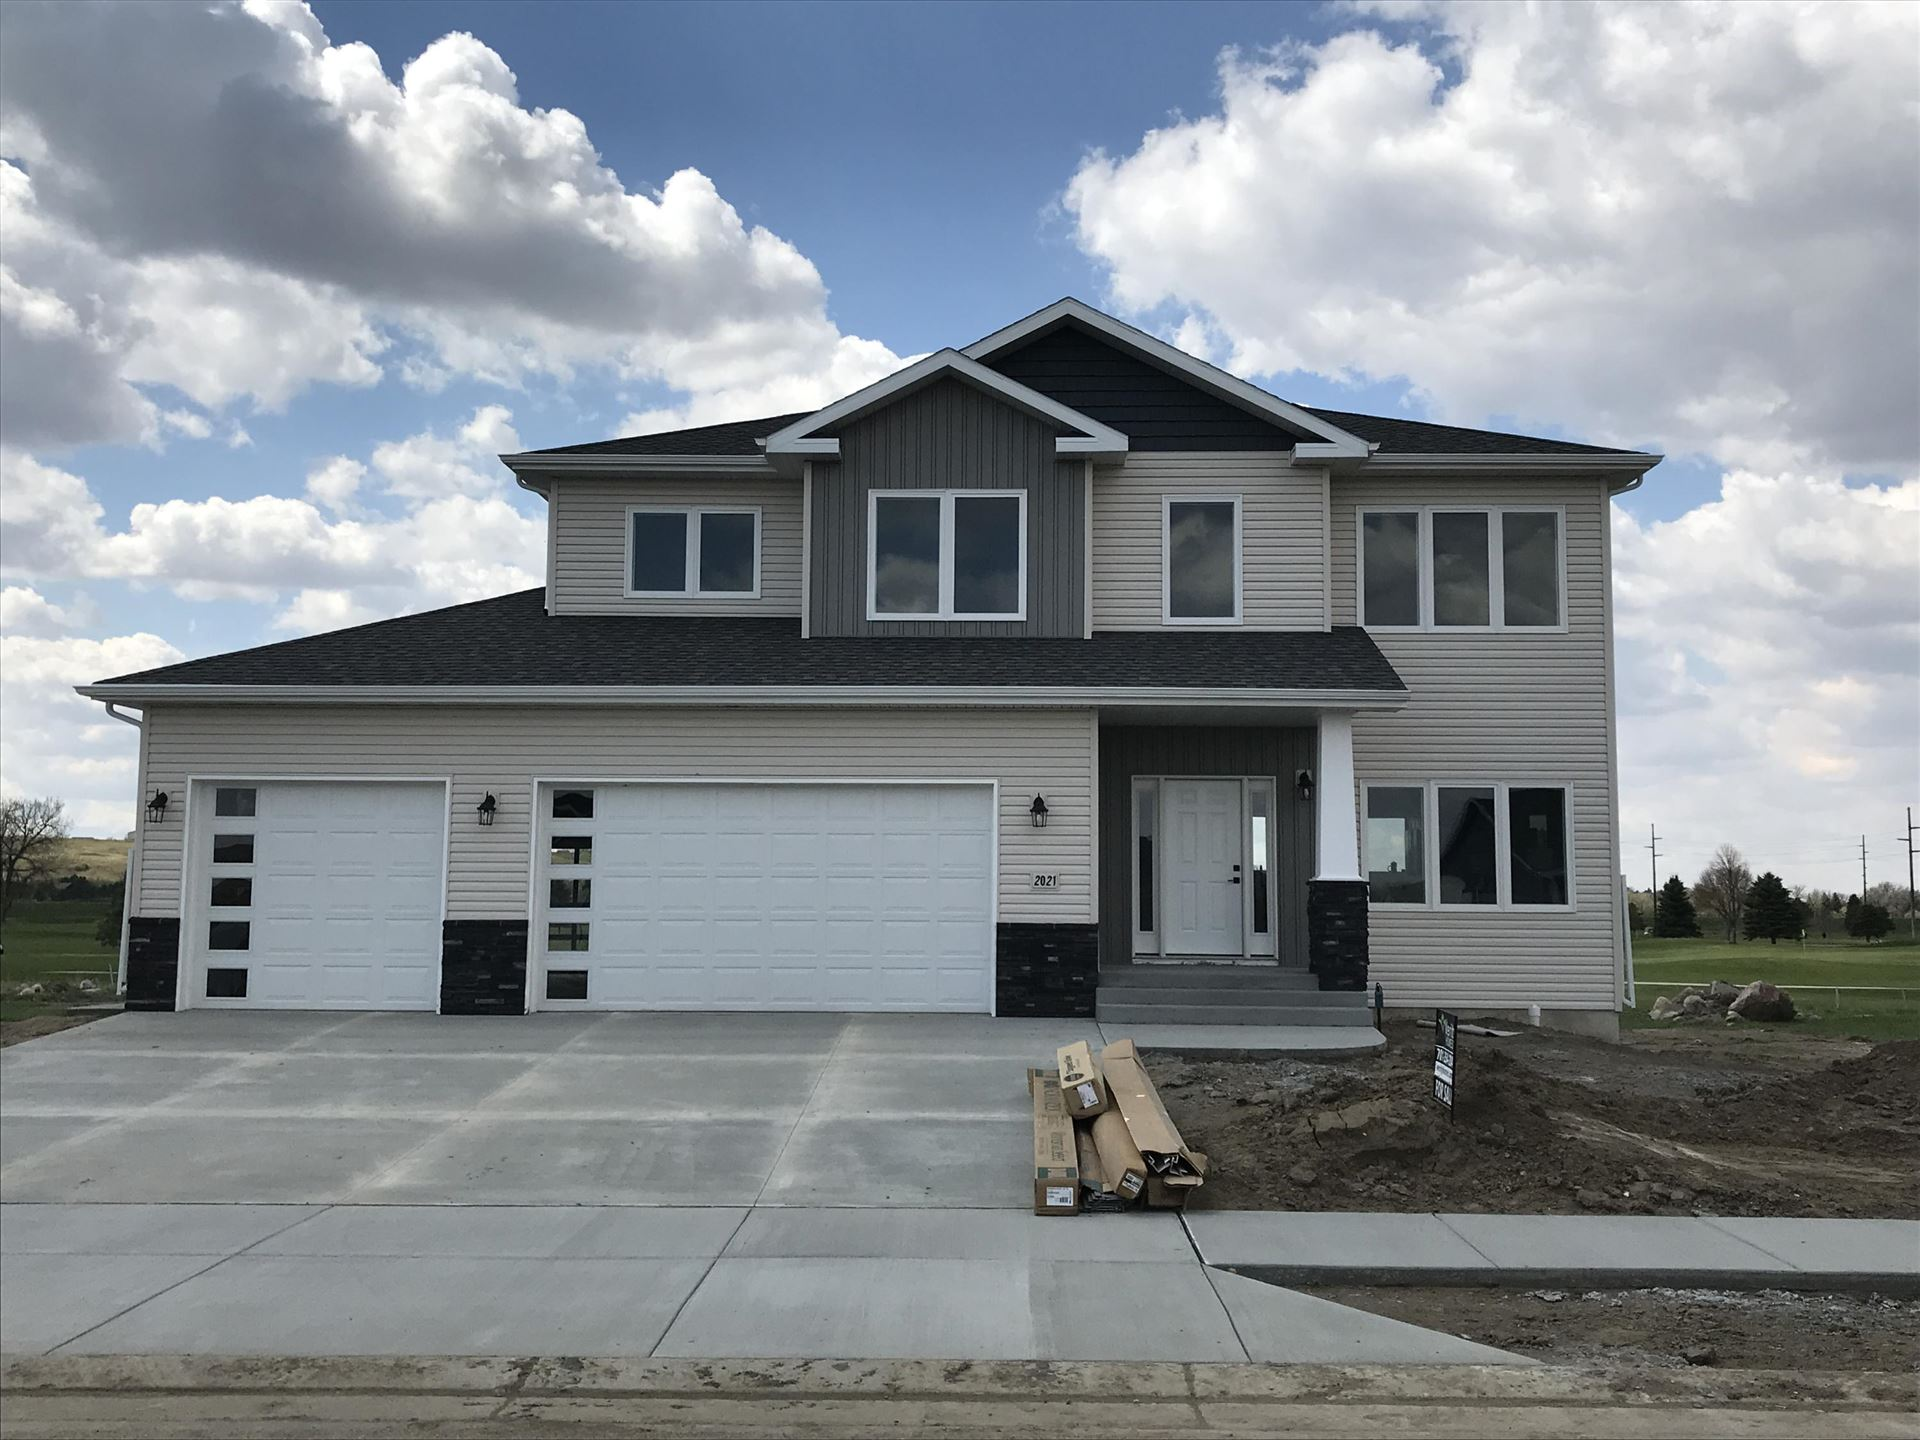 2021 34th Avenue SE, Mandan, ND 58554 - #: 407814